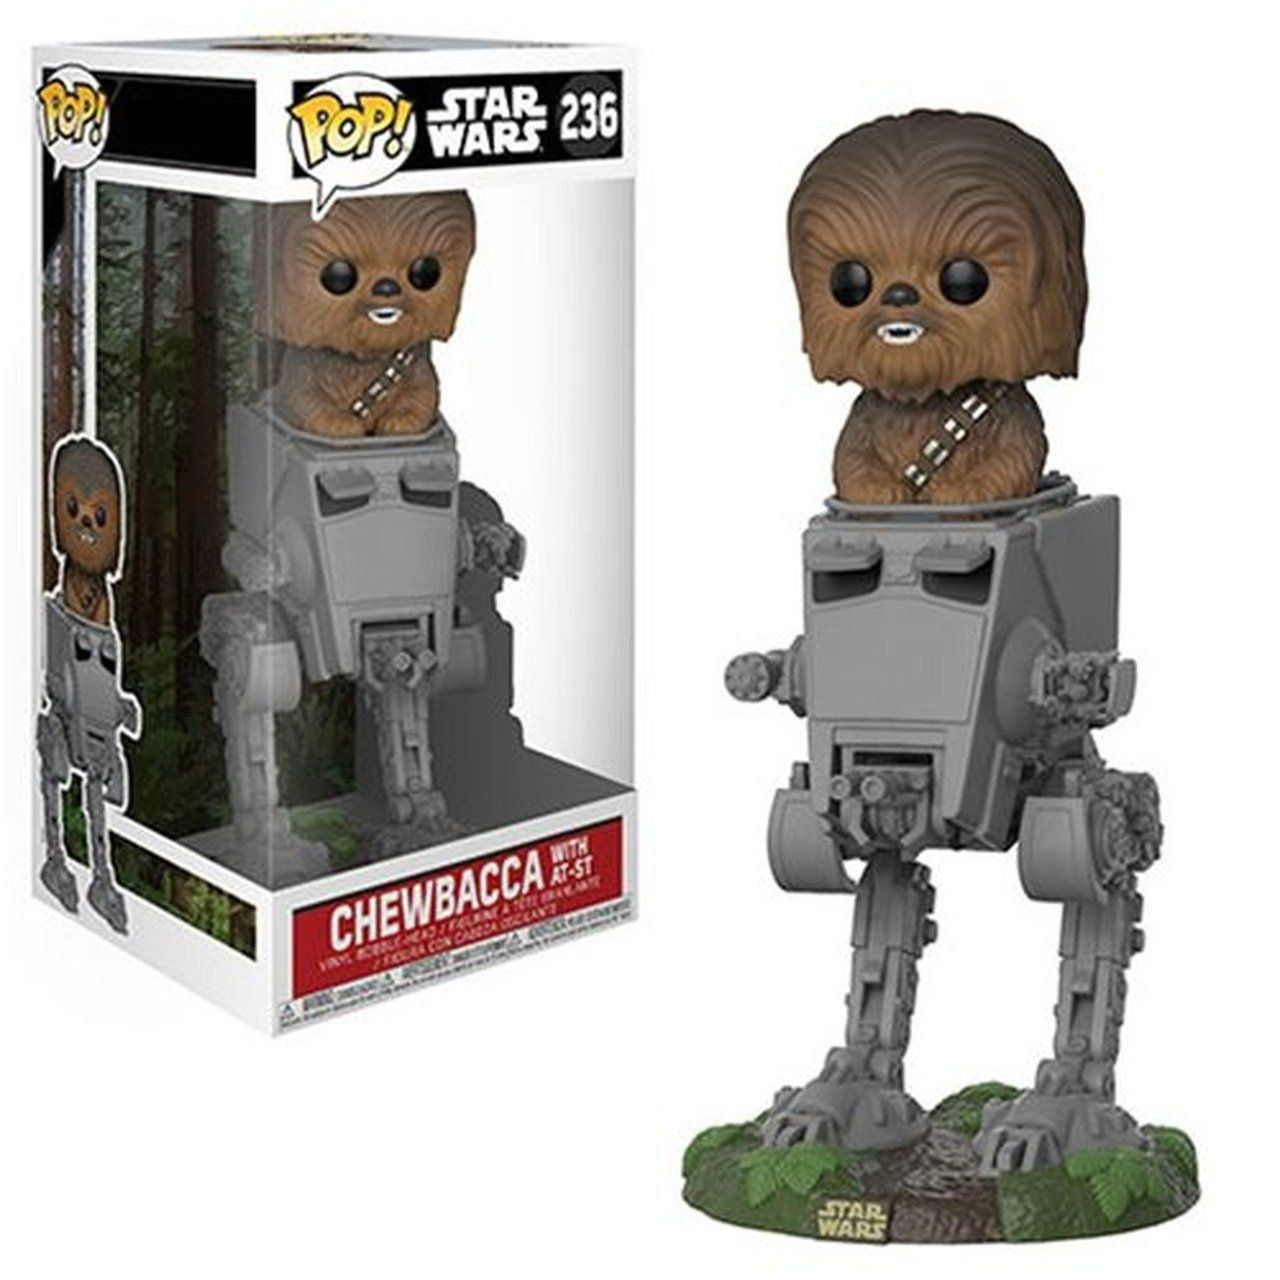 Funko Pop! Chewbacca in AT-ST Deluxe: Star Wars #236 - Funko